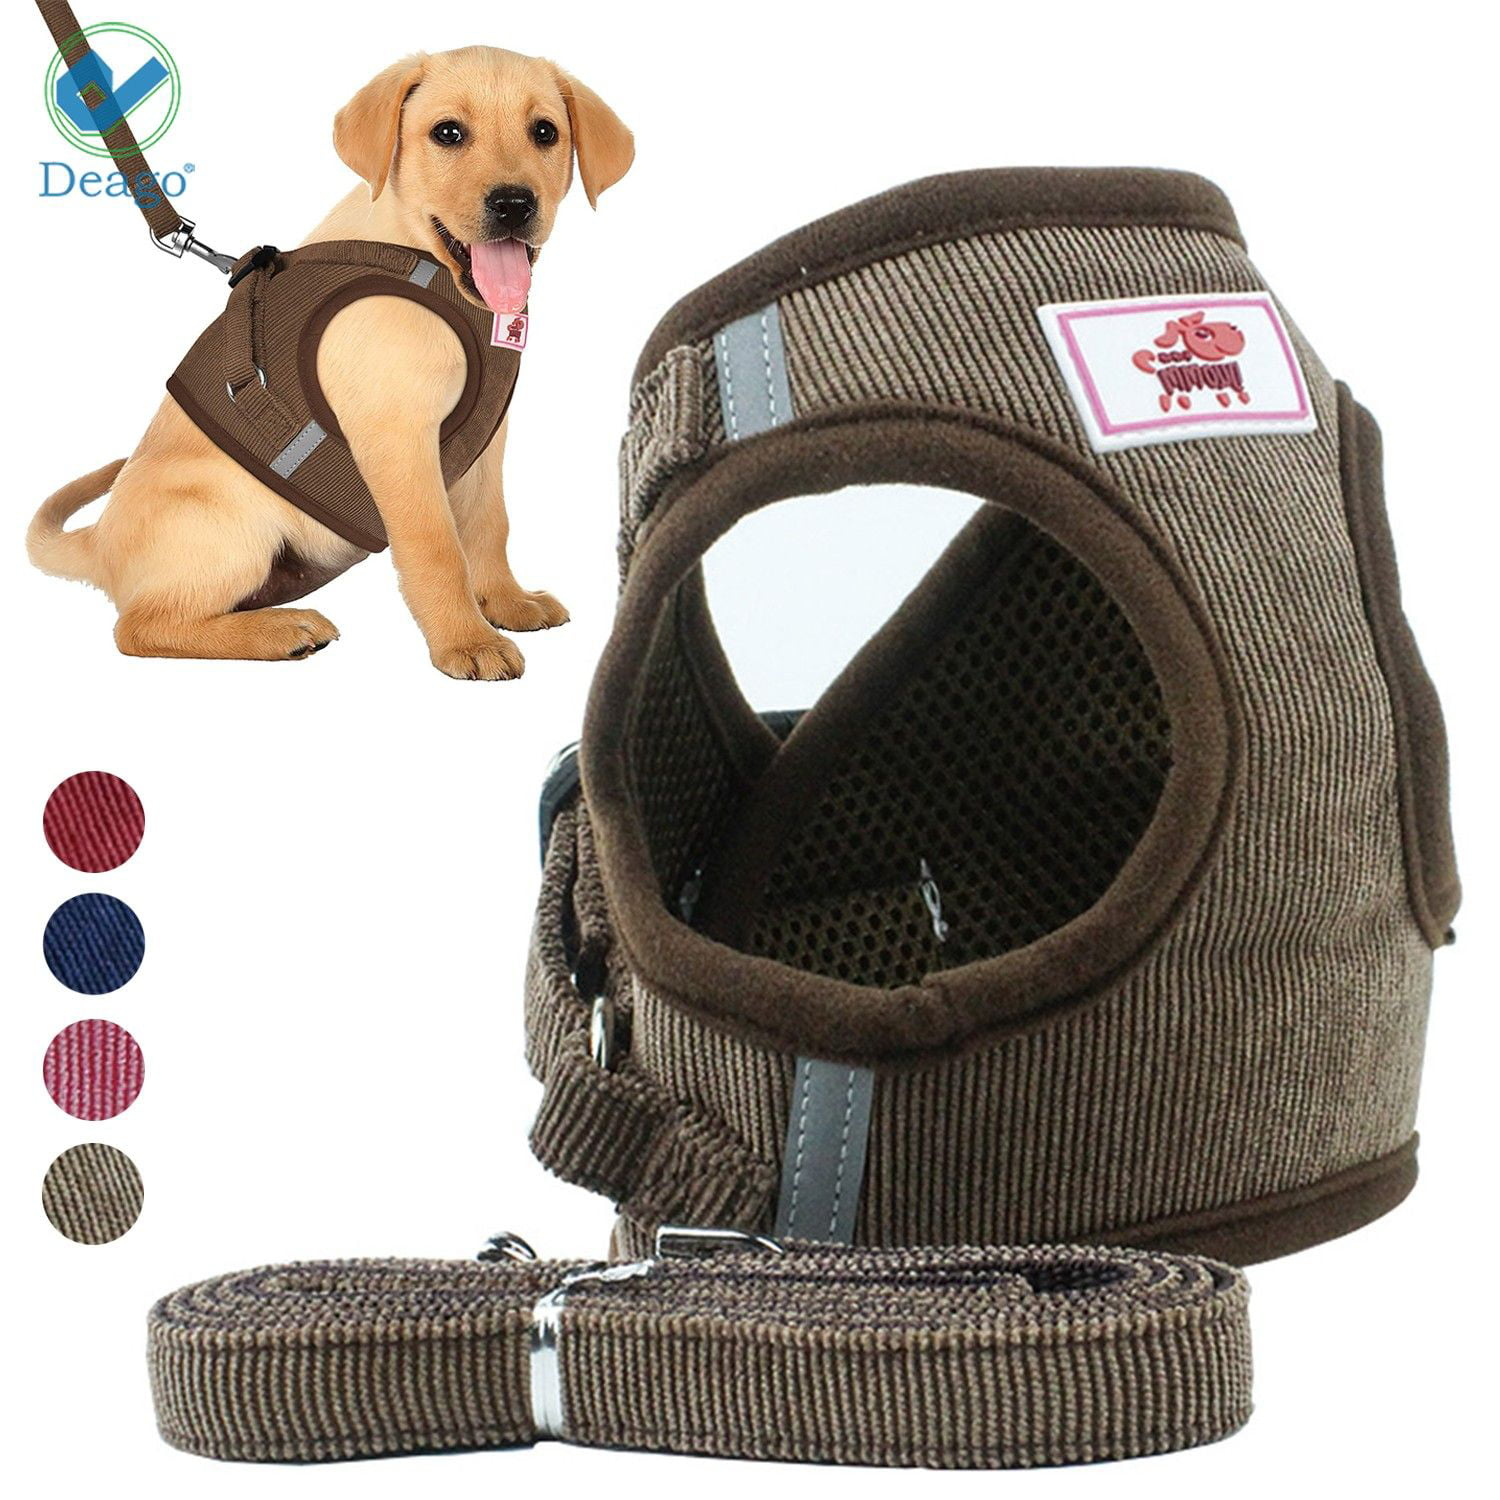 BurBurly Pet Vest Harness with Handle Adjustable Traction Rope Pet Dog Chest Strap Retro Pattern Neck Chest Belt Comfort Vest for Outdoor Training Walking